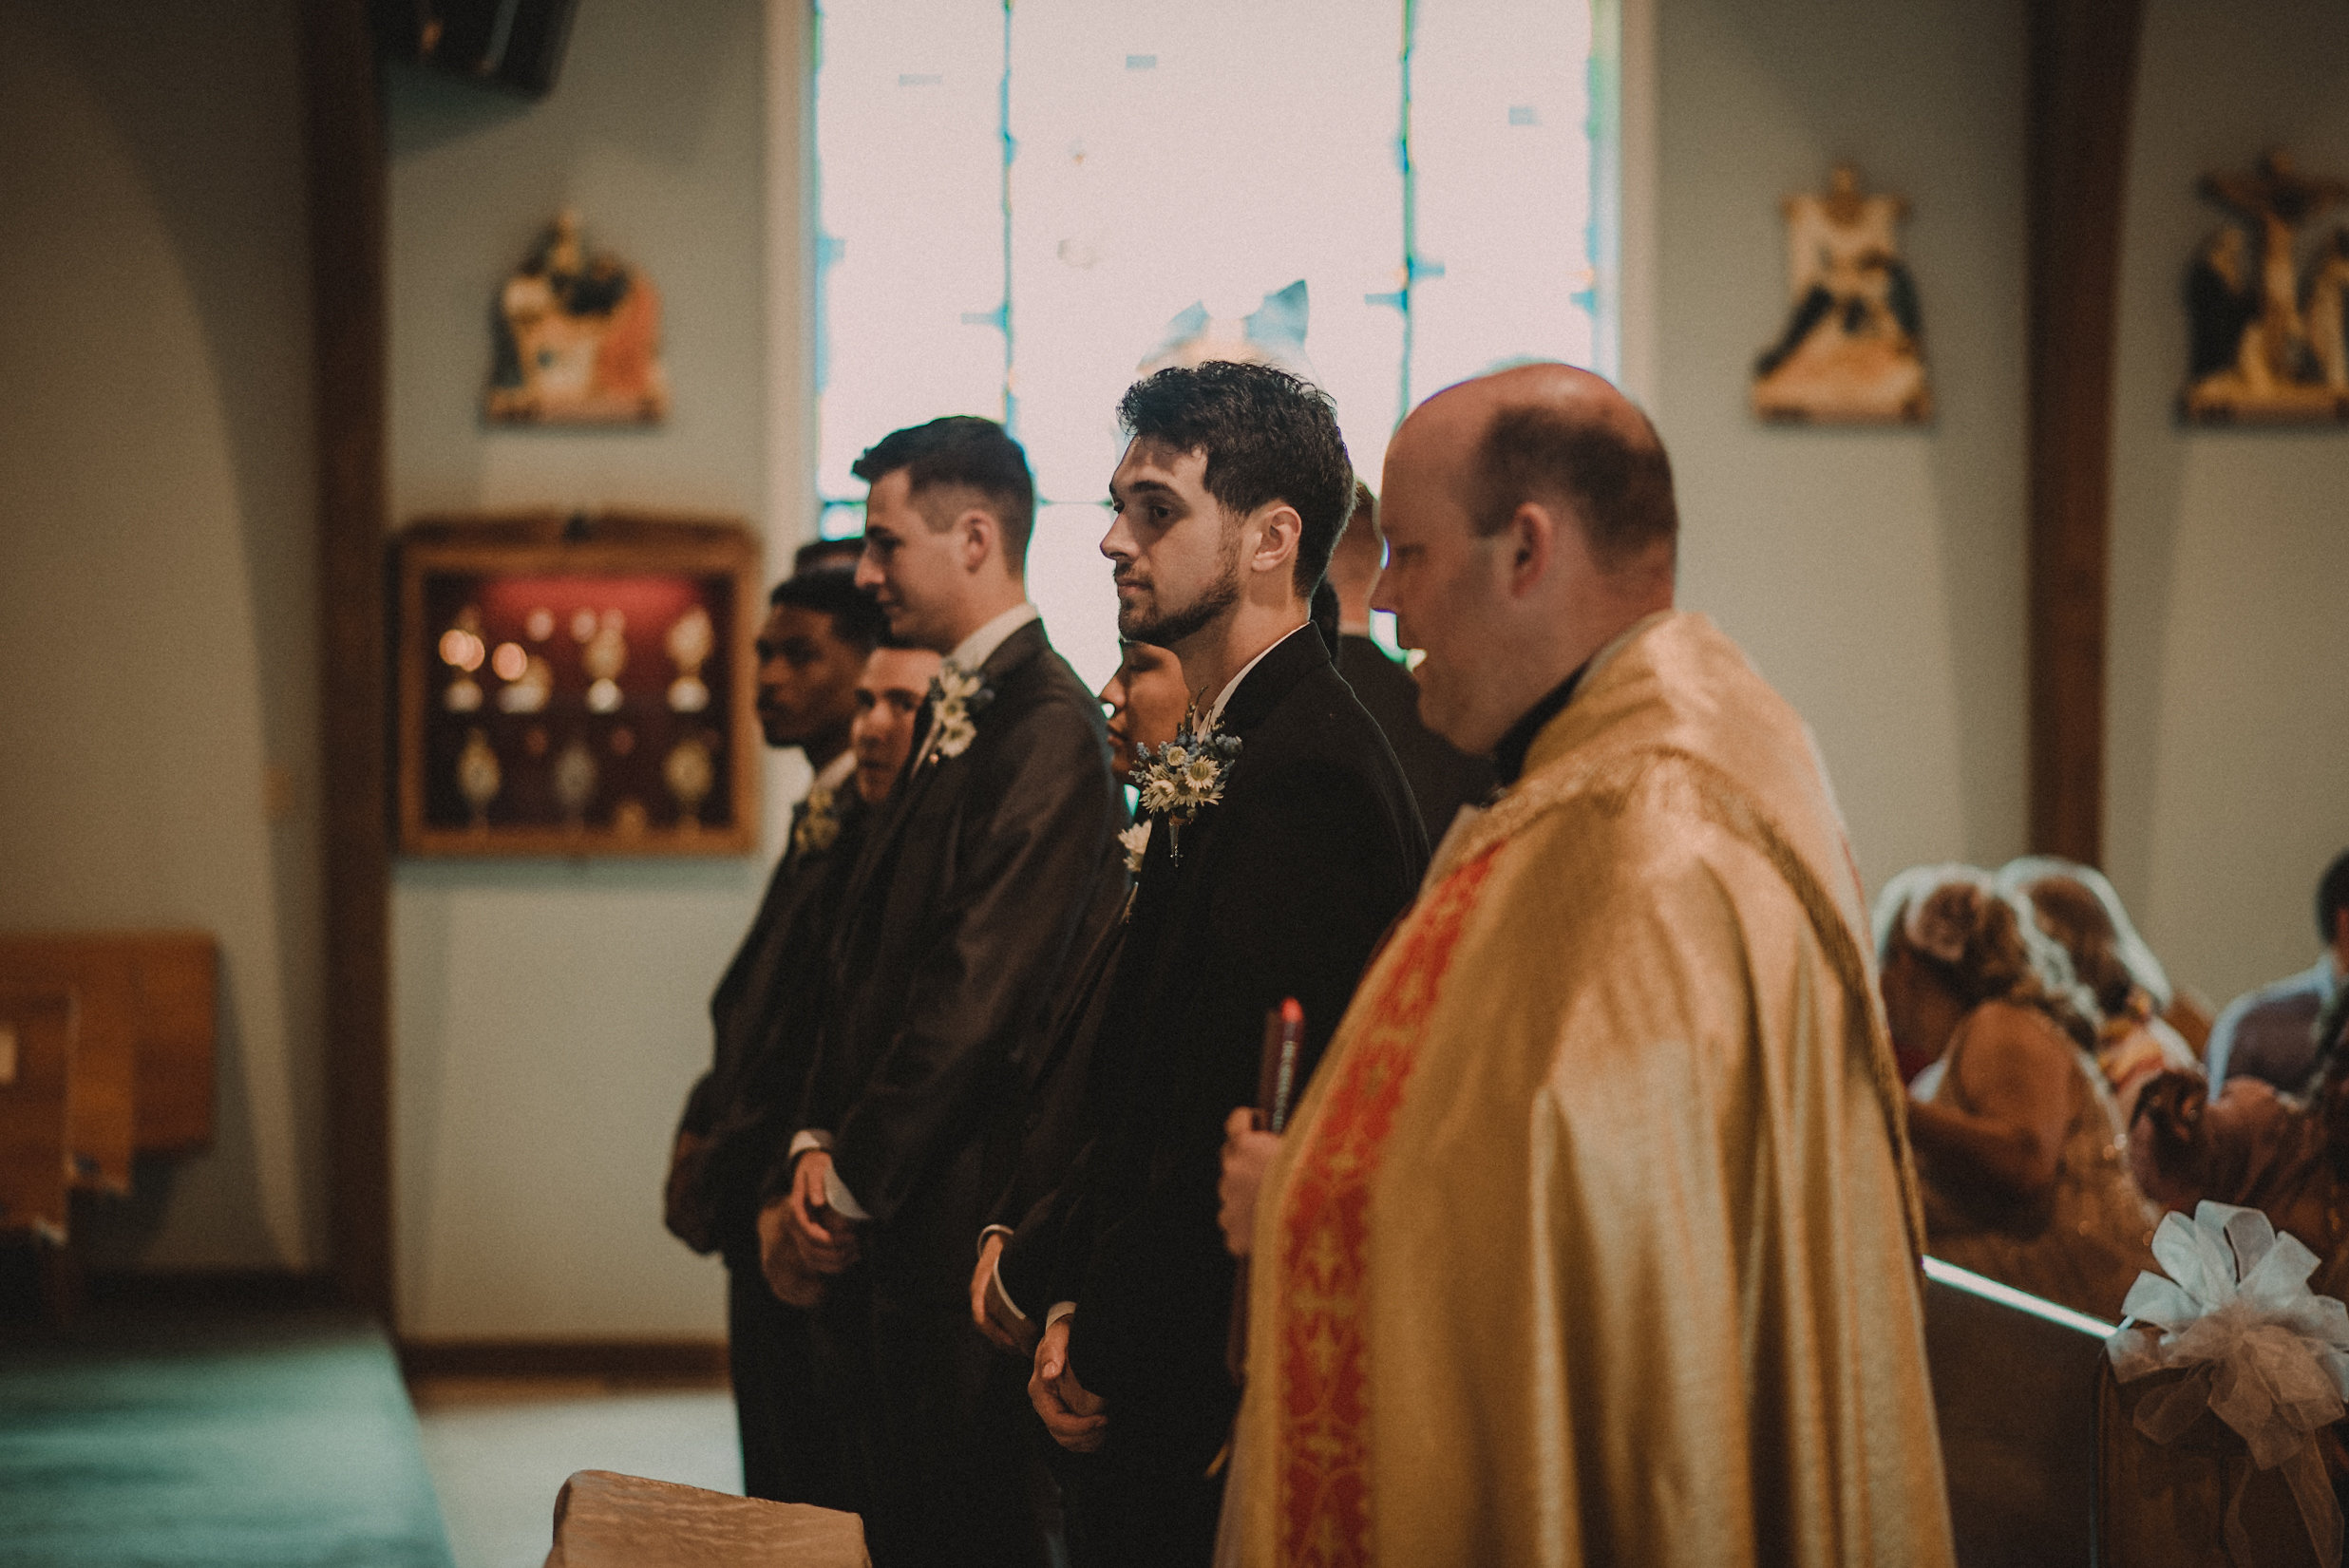 Groom standing at altar in church